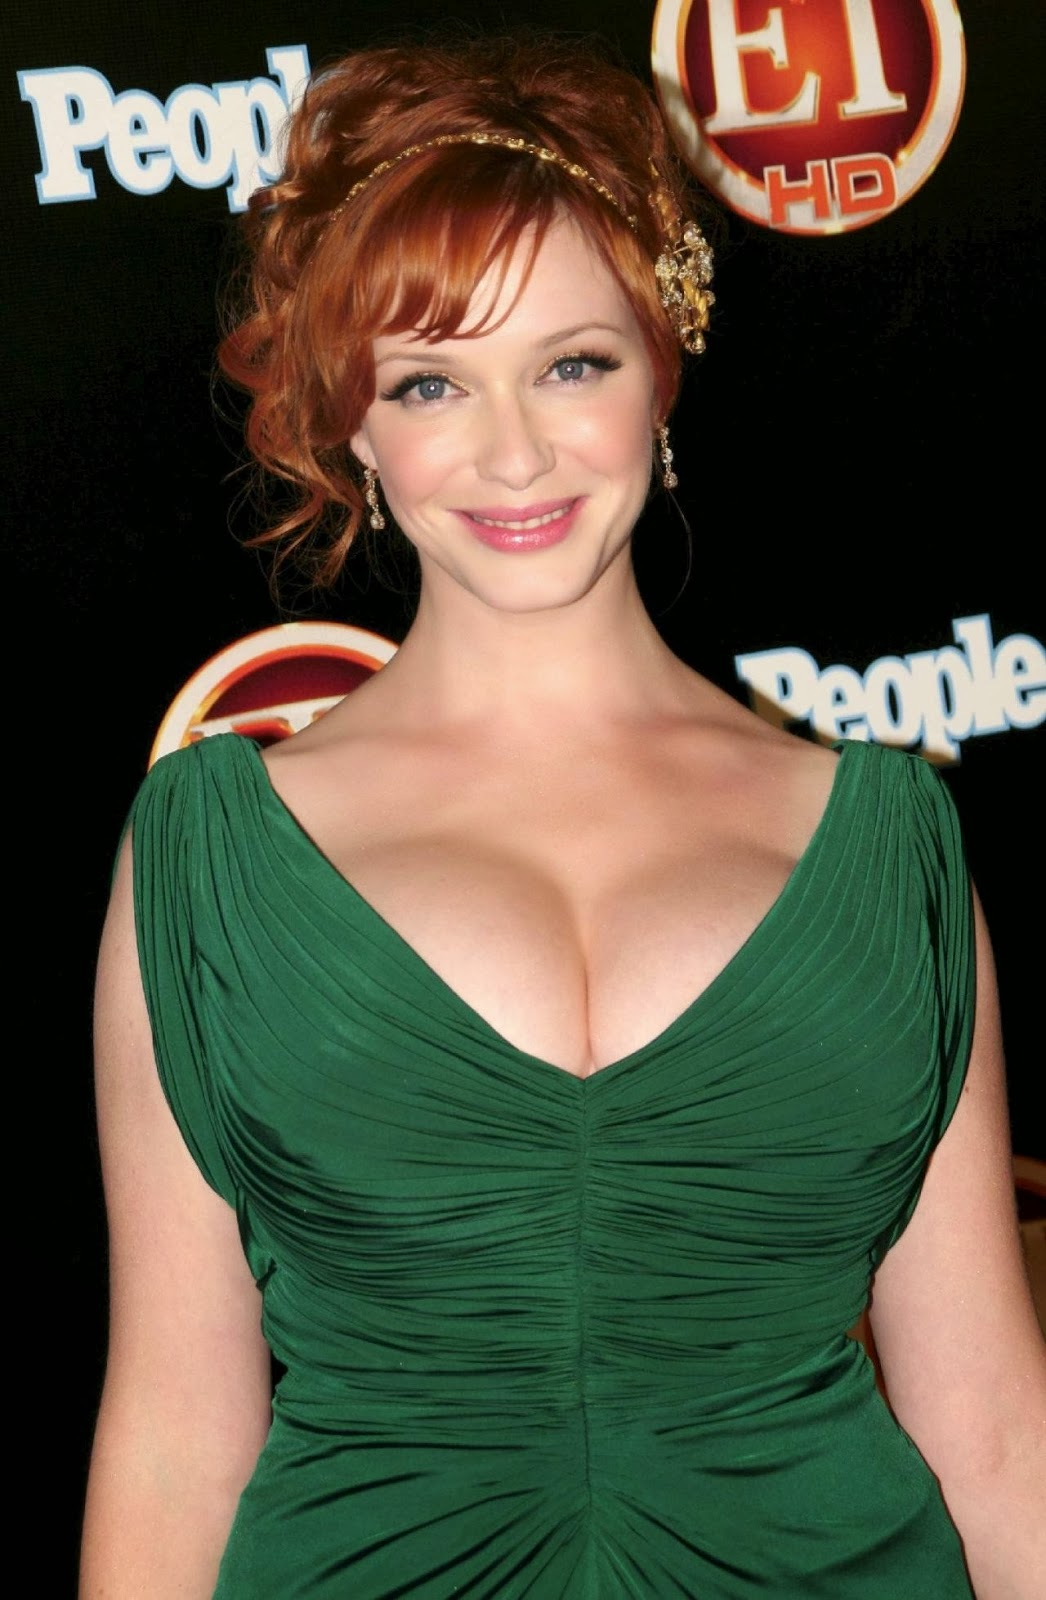 ICloud Christina Hendricks naked (87 photo), Tits, Fappening, Selfie, lingerie 2015